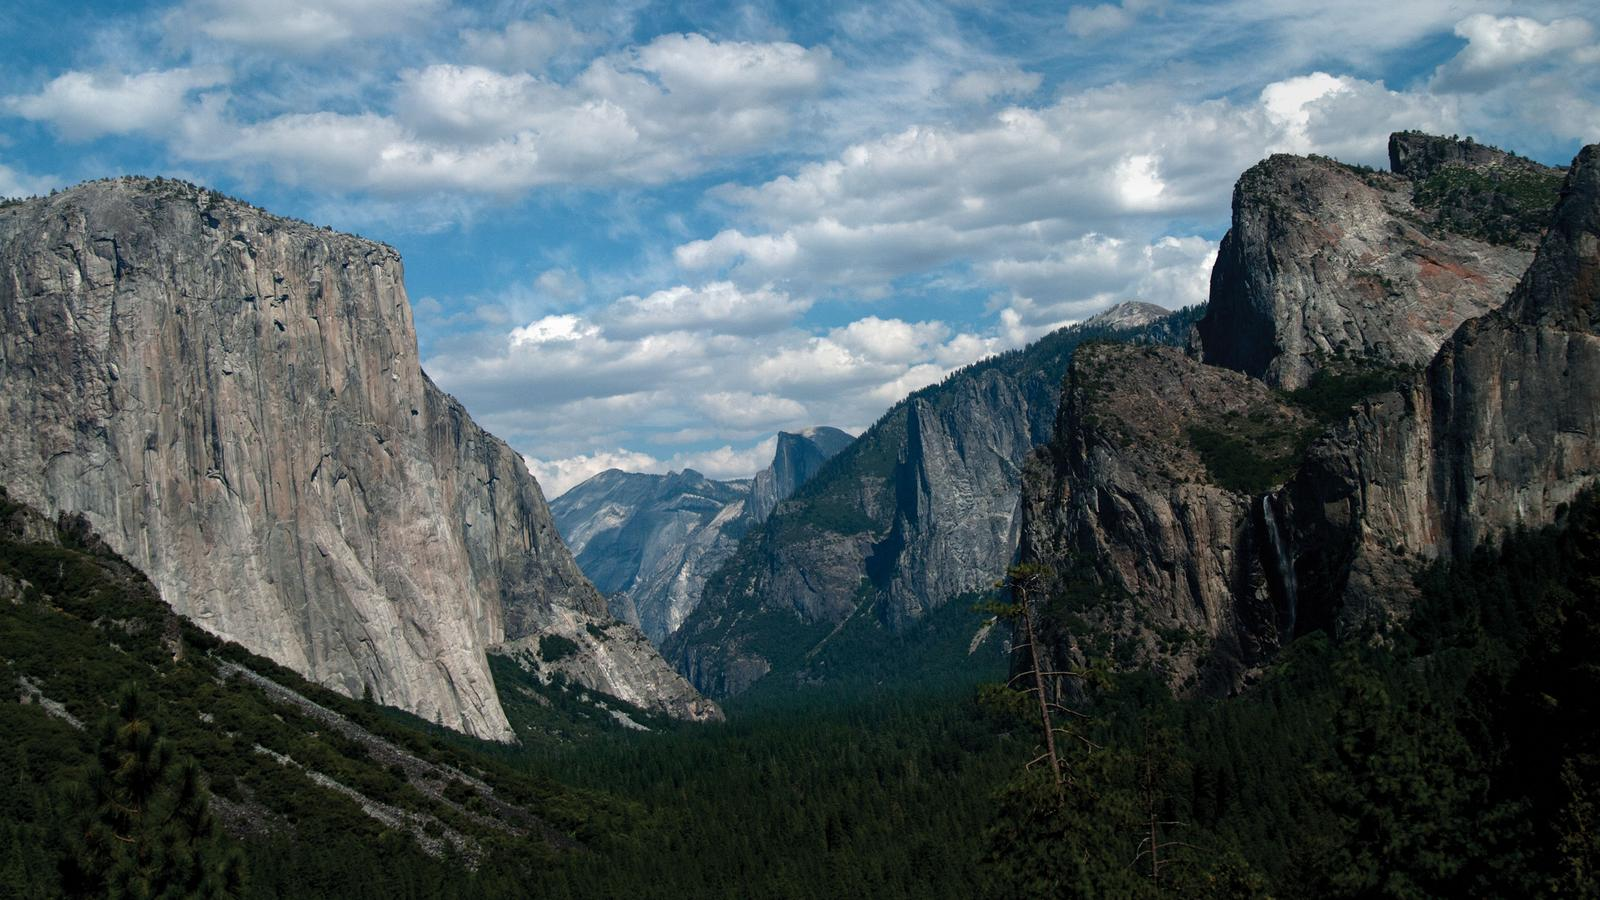 Yosemite-Nationalpark-USA-Roadtrip-in-der-Gruppe-Campingreise-preiswert-traveljunkies